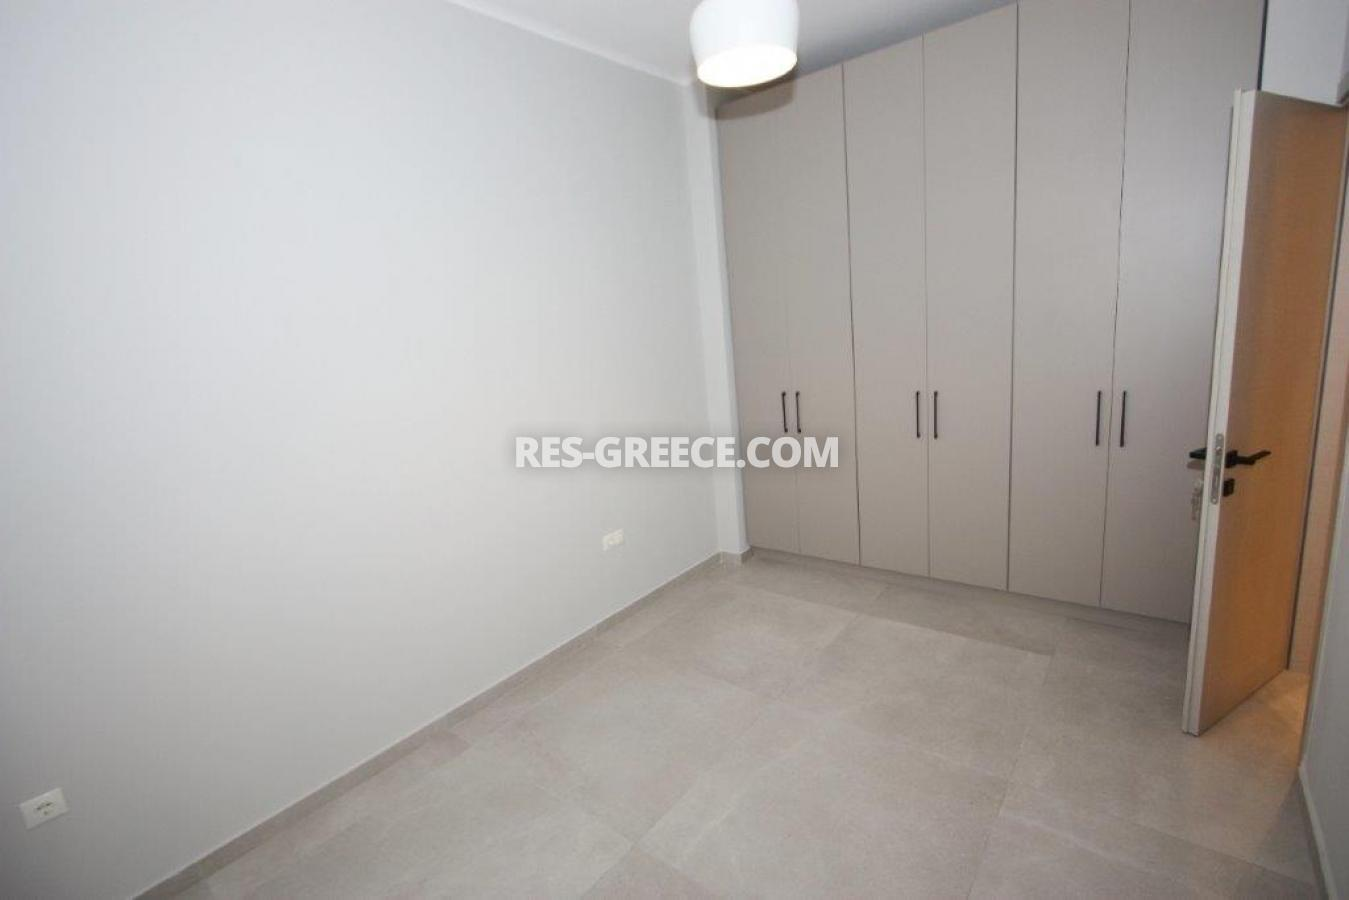 Poli 11, Central Macedonia, Greece - investment appartment in Thessaloniki - Photo 5